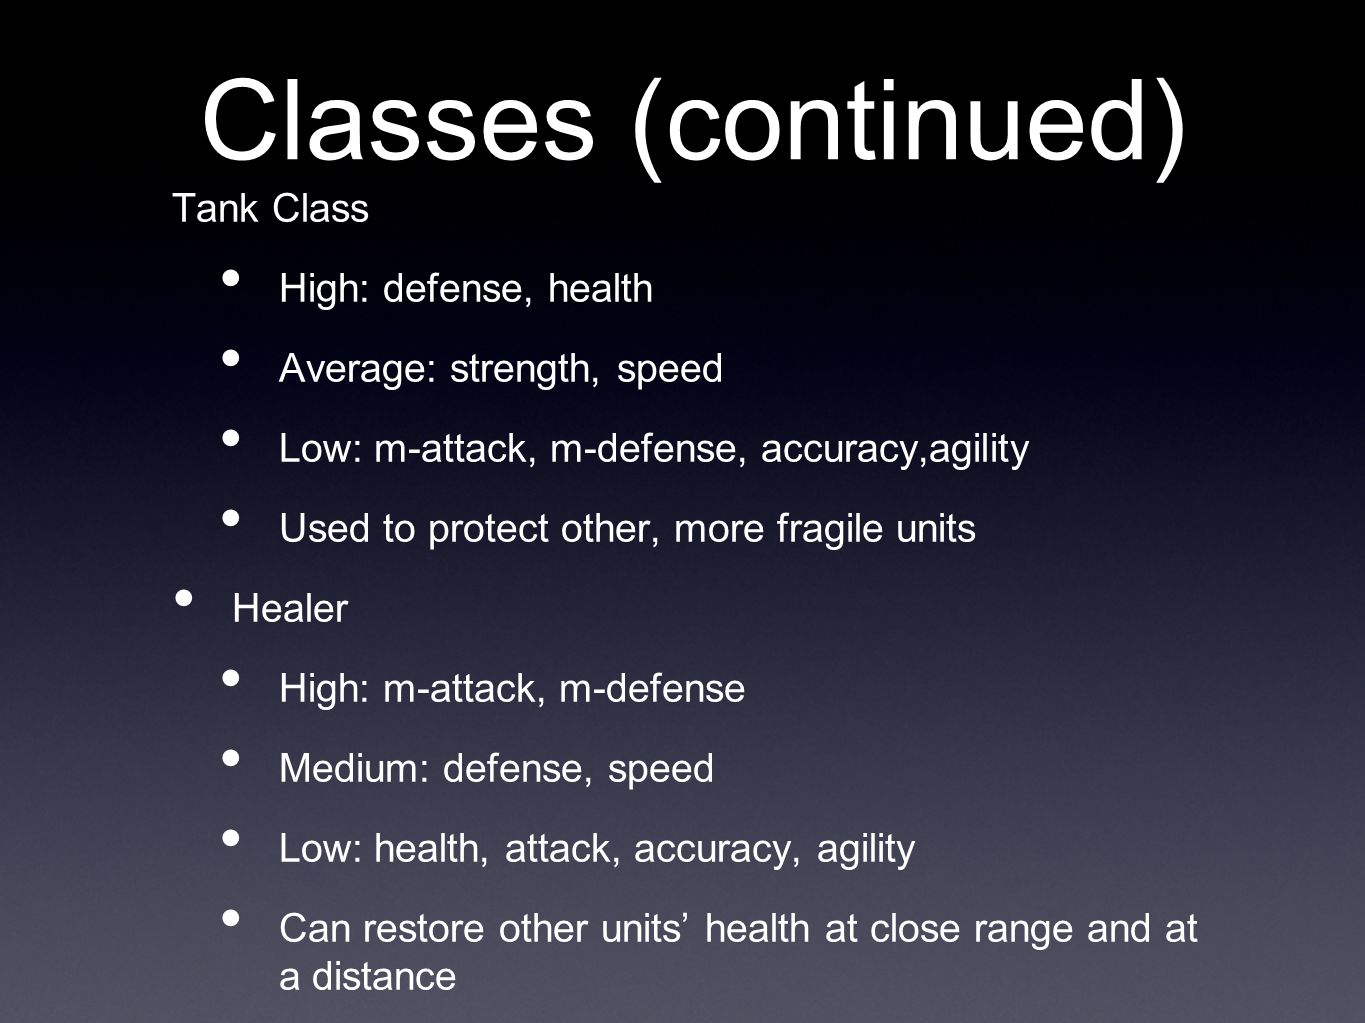 Classes (continued) Tank Class High: defense, health Average: strength, speed Low: m-attack, m-defense, accuracy,agility Used to protect other, more fragile units Healer High: m-attack, m-defense Medium: defense, speed Low: health, attack, accuracy, agility Can restore other units' health at close range and at a distance